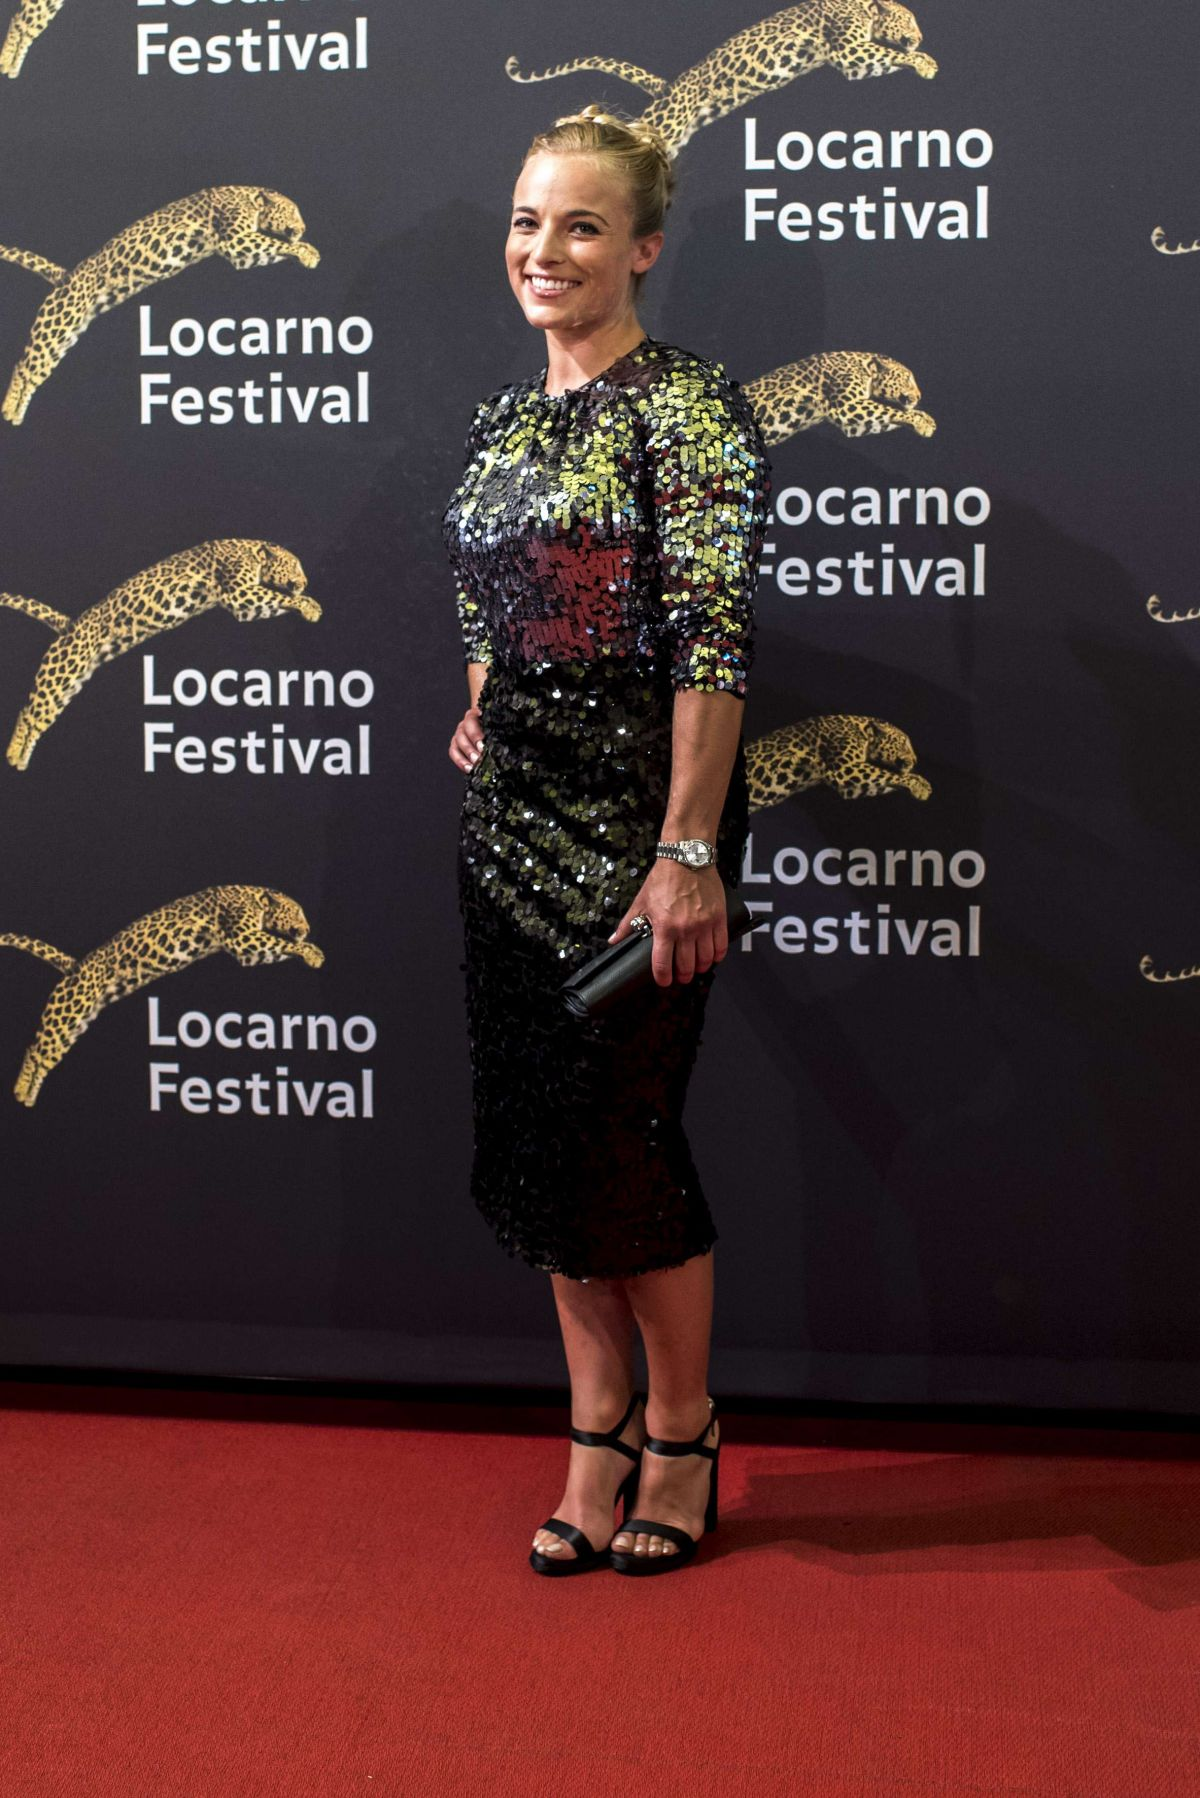 LARA GUT at 70th Locarno Festival in Locarno 08/04/2017